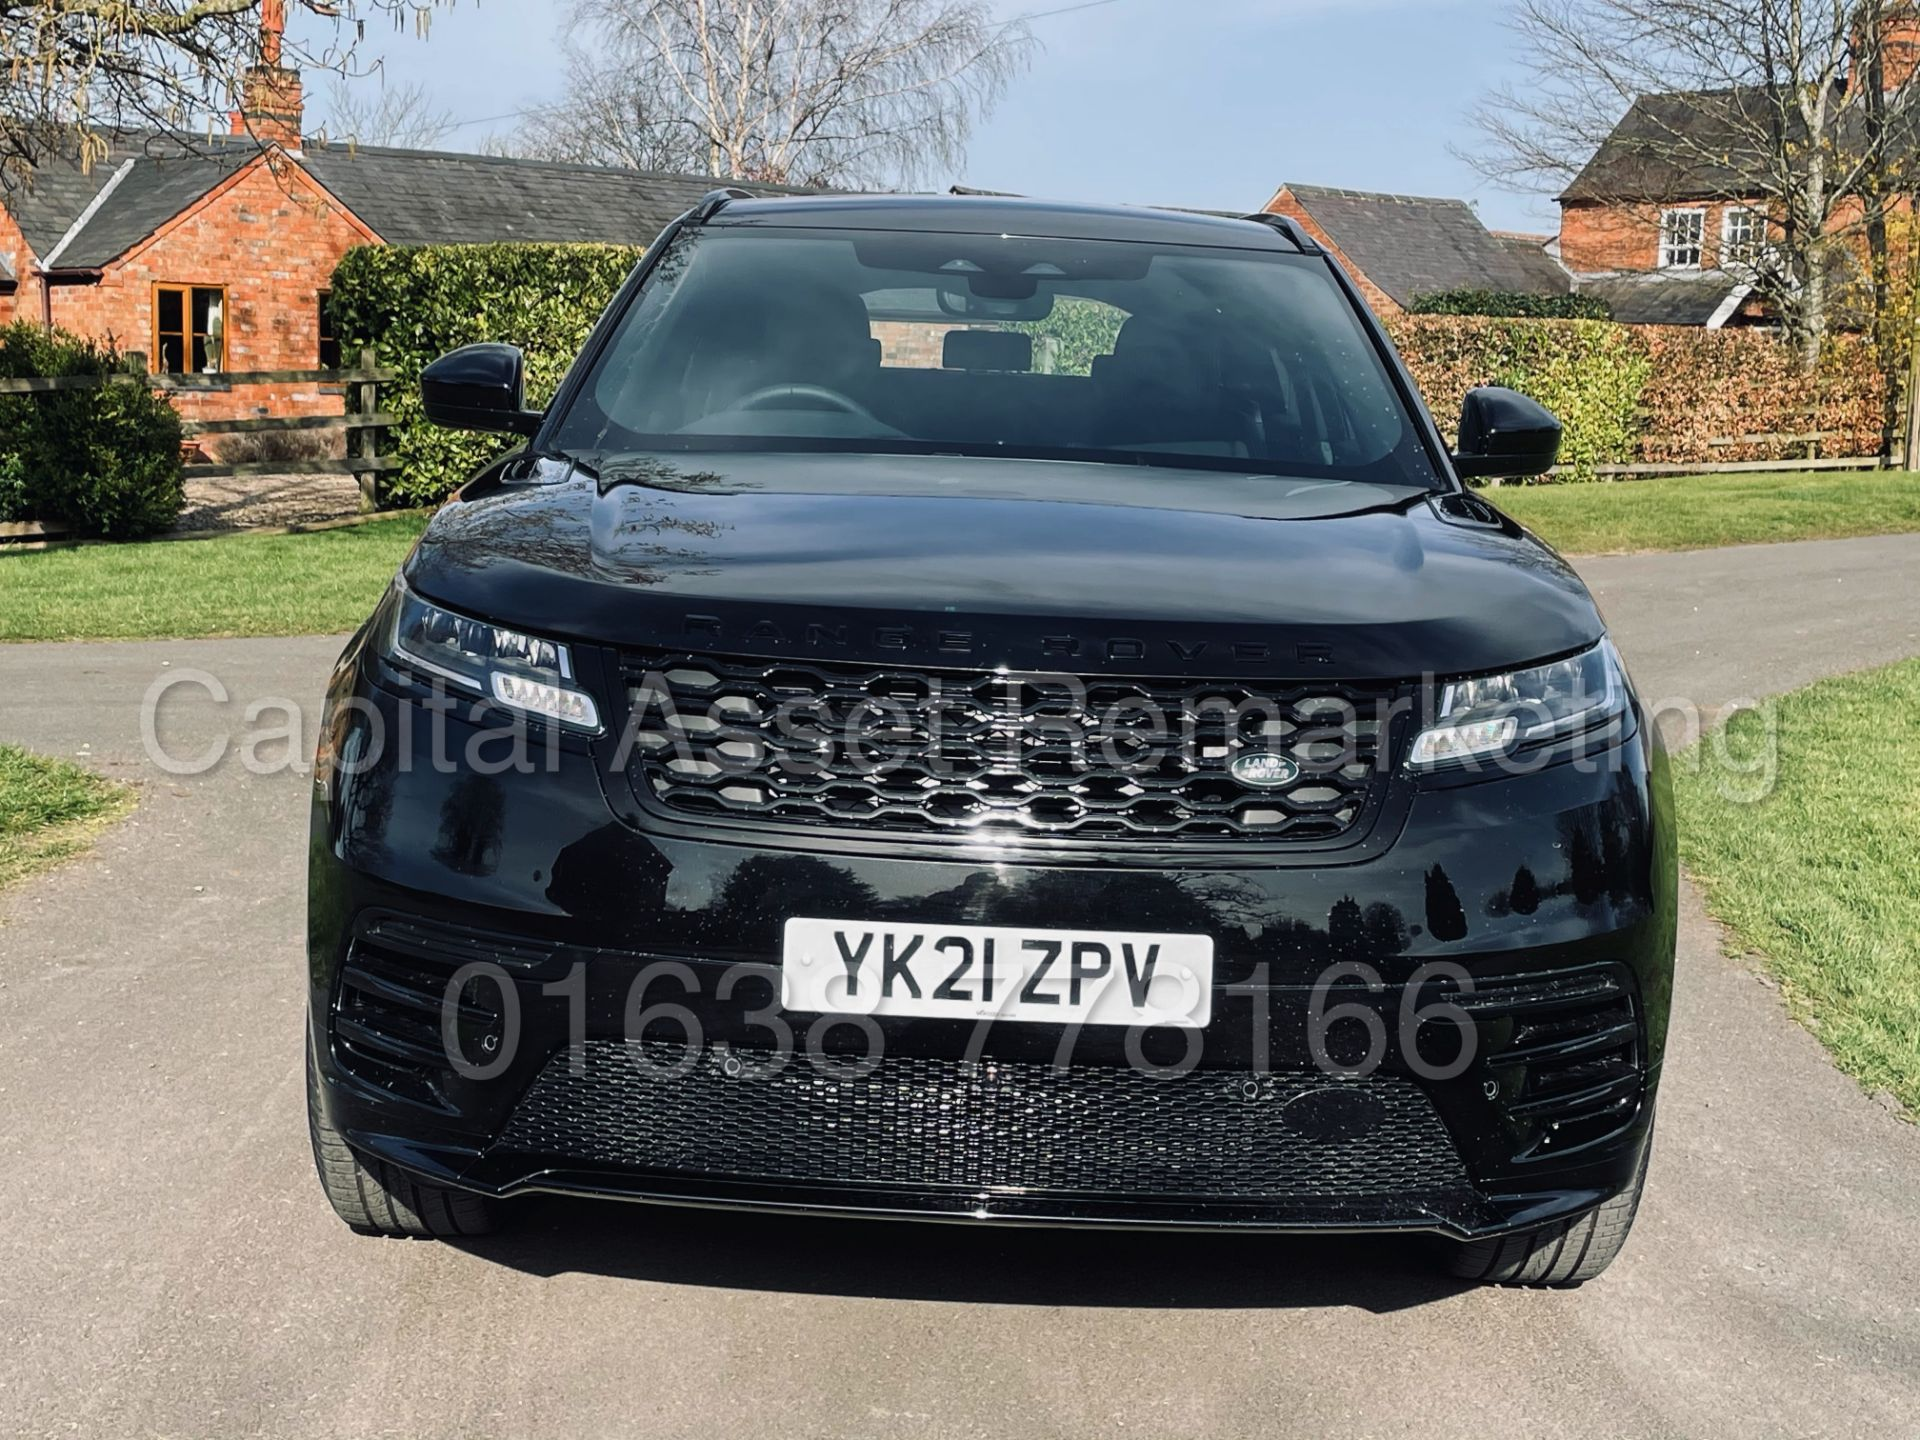 (On Sale) RANGE ROVER VELAR *R-DYNAMIC* SUV (2021) *8 SPEED AUTO - LEATHER* (DELIVERY MILES) - Image 4 of 50